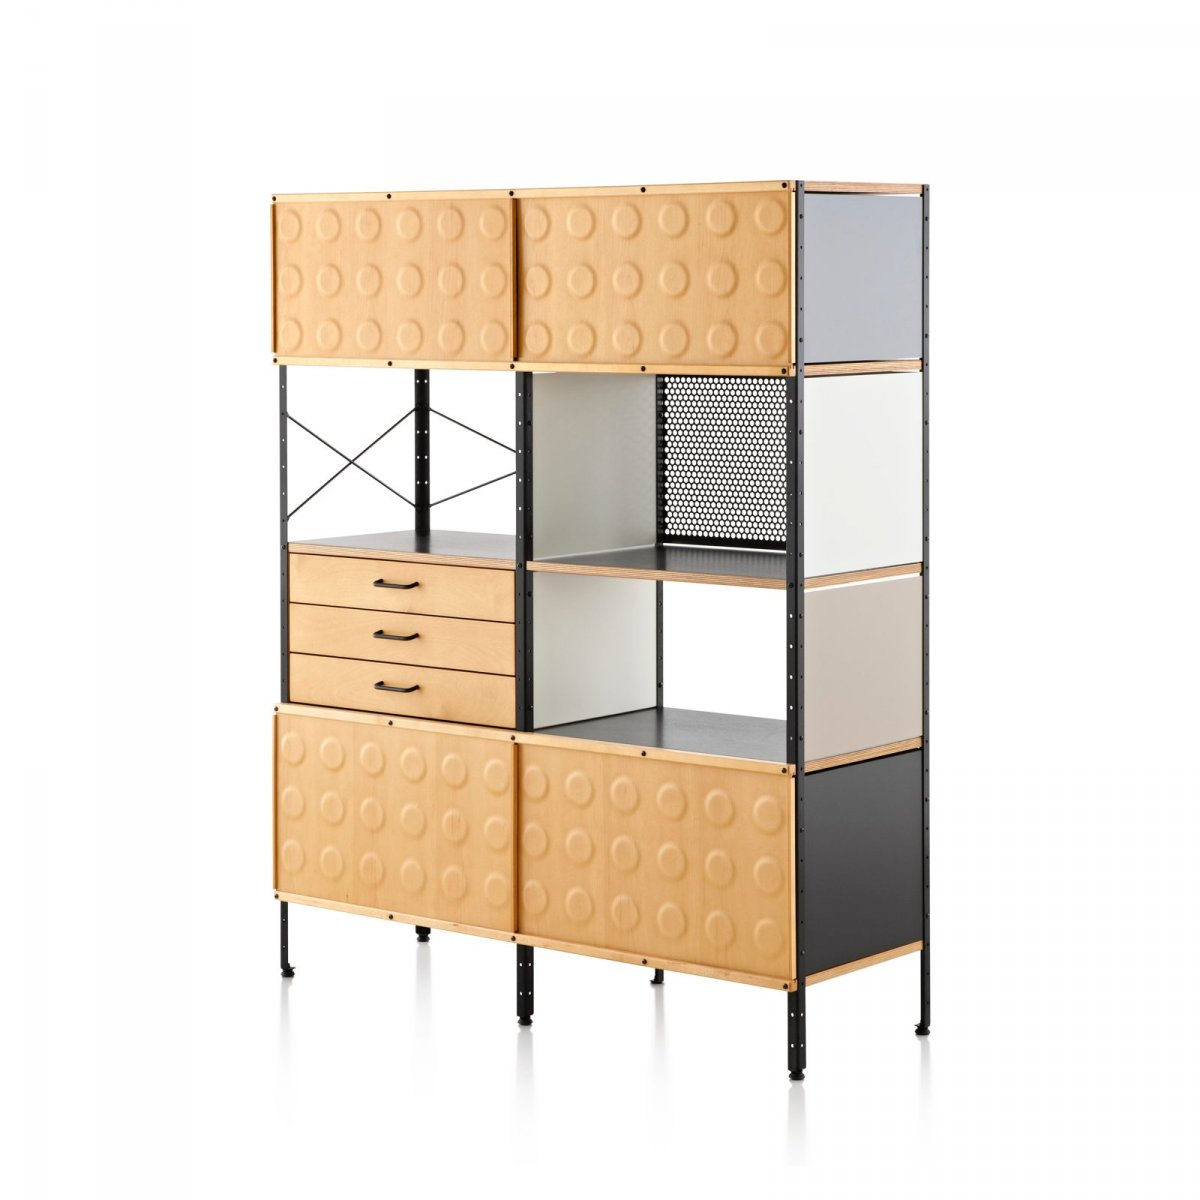 Eames Storage Unit, 4 units high × 2 units wide, neutral colors.